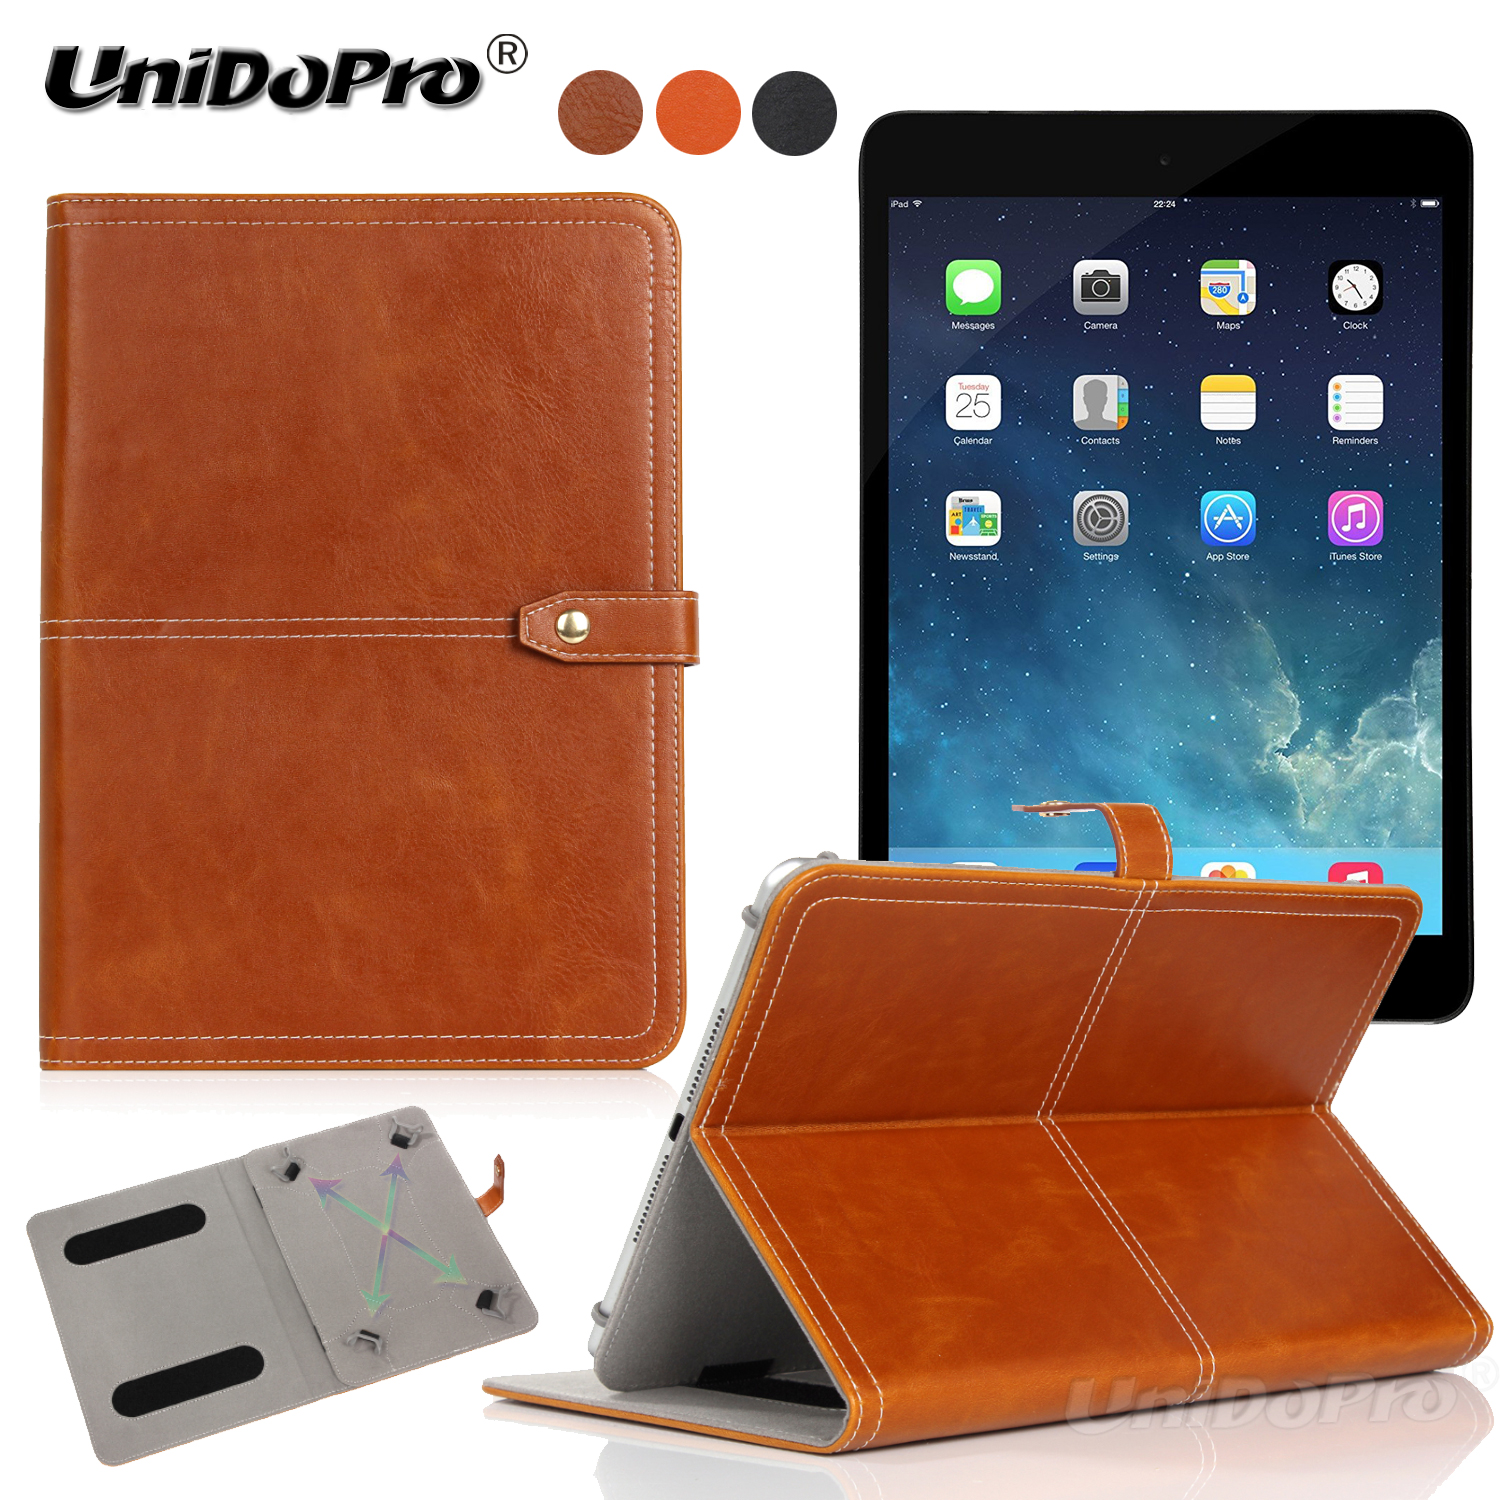 Unidopro Shockproof PU Leather Protective Folio Case for iPad Mini 3 2 A1600 A1219 A1454 A1455 Tablet w/ Multi-angle Stand Cover